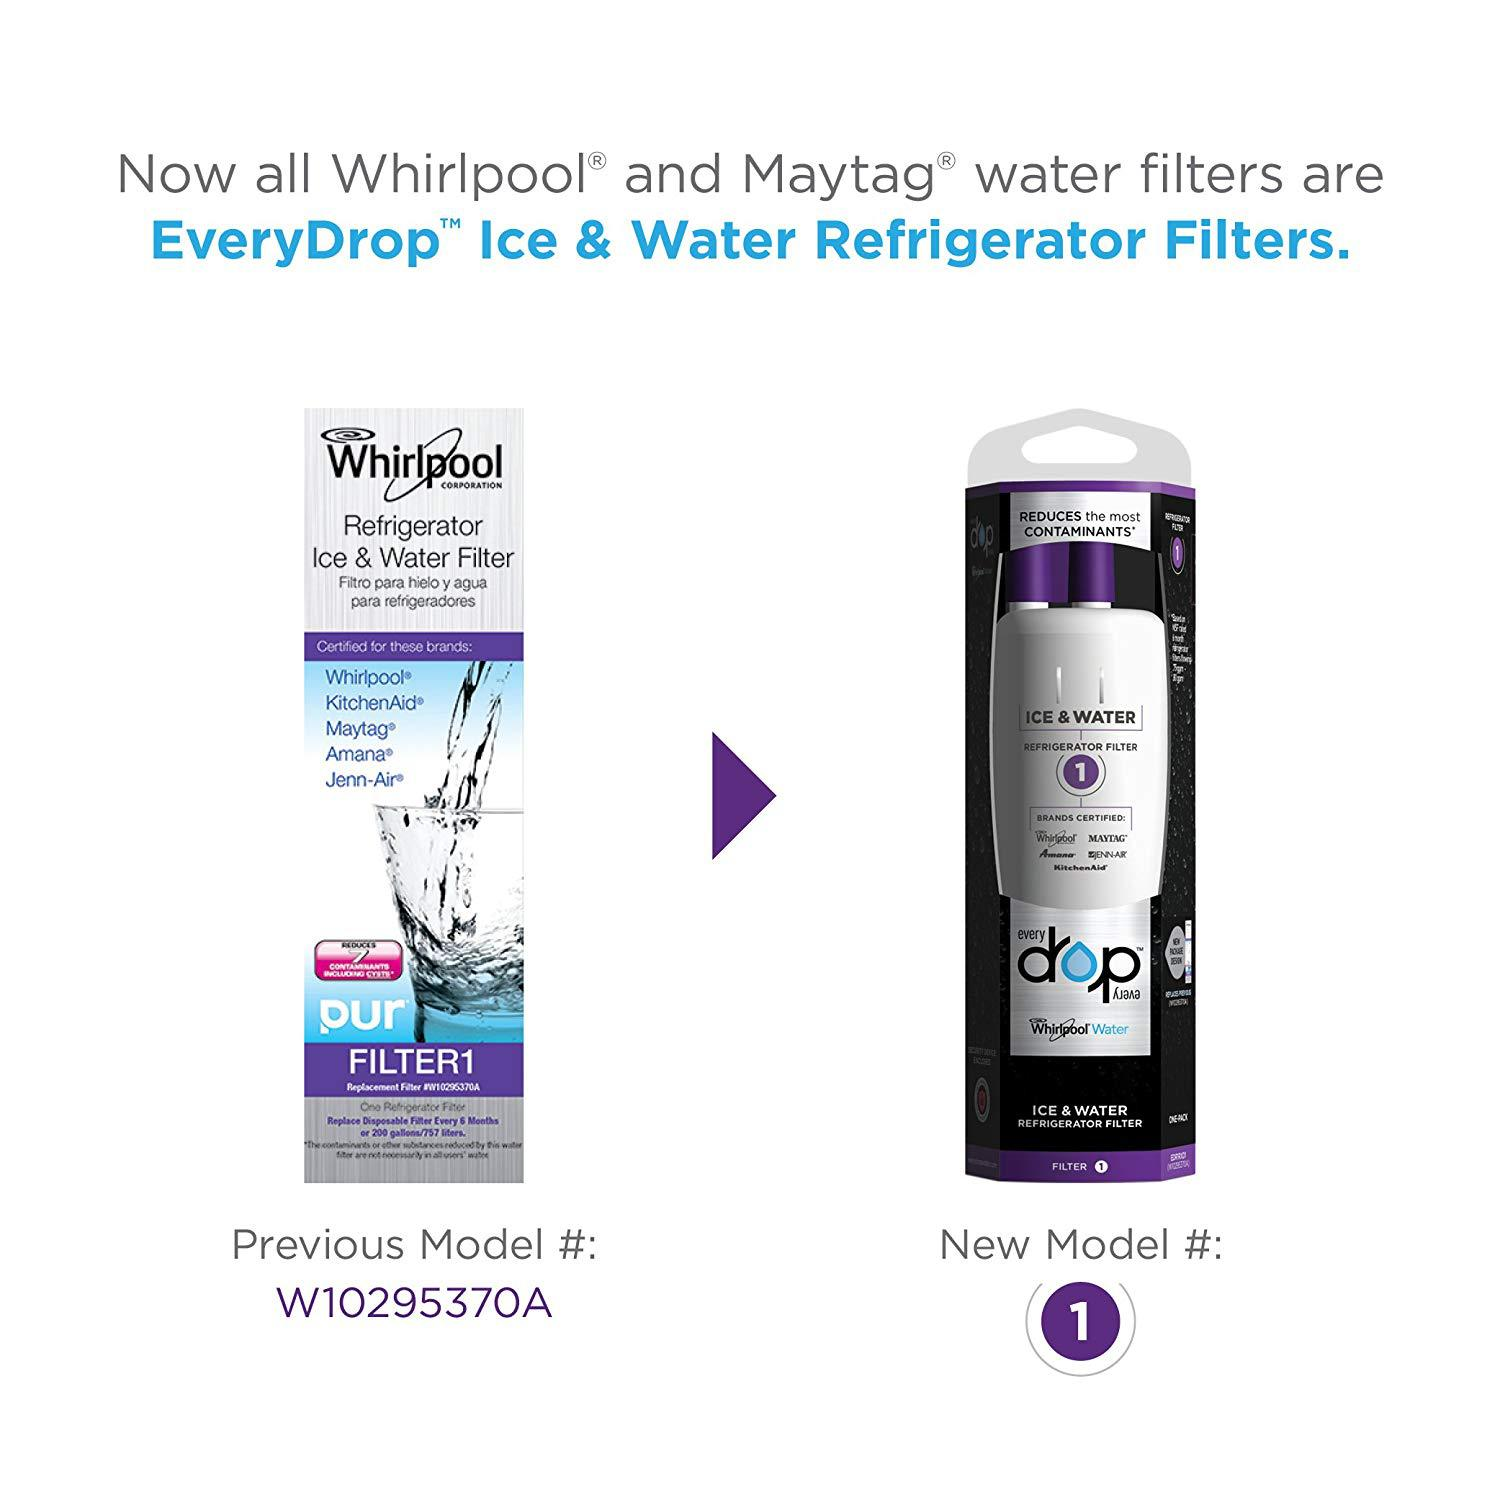 Whirlpool Drop 1 Refrigerator Filter Can Be Replaced, On Behalf On Behalf Of The Delivery